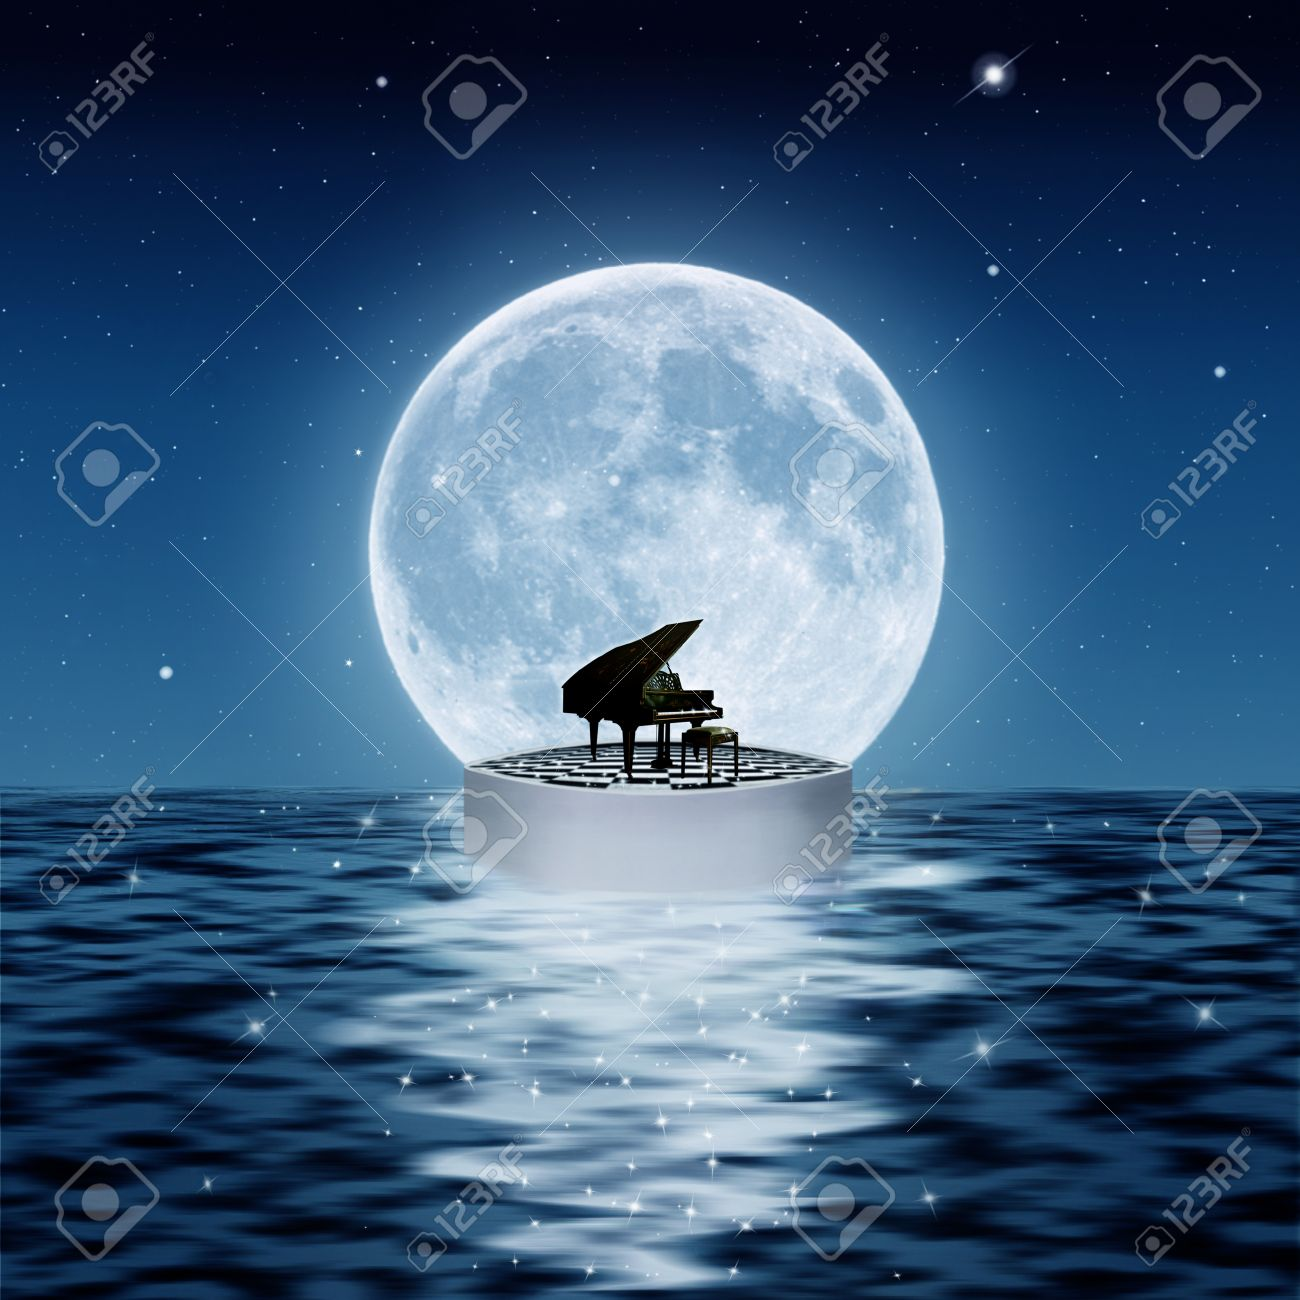 piano on a platform in the sea with a big full moon - 28036083